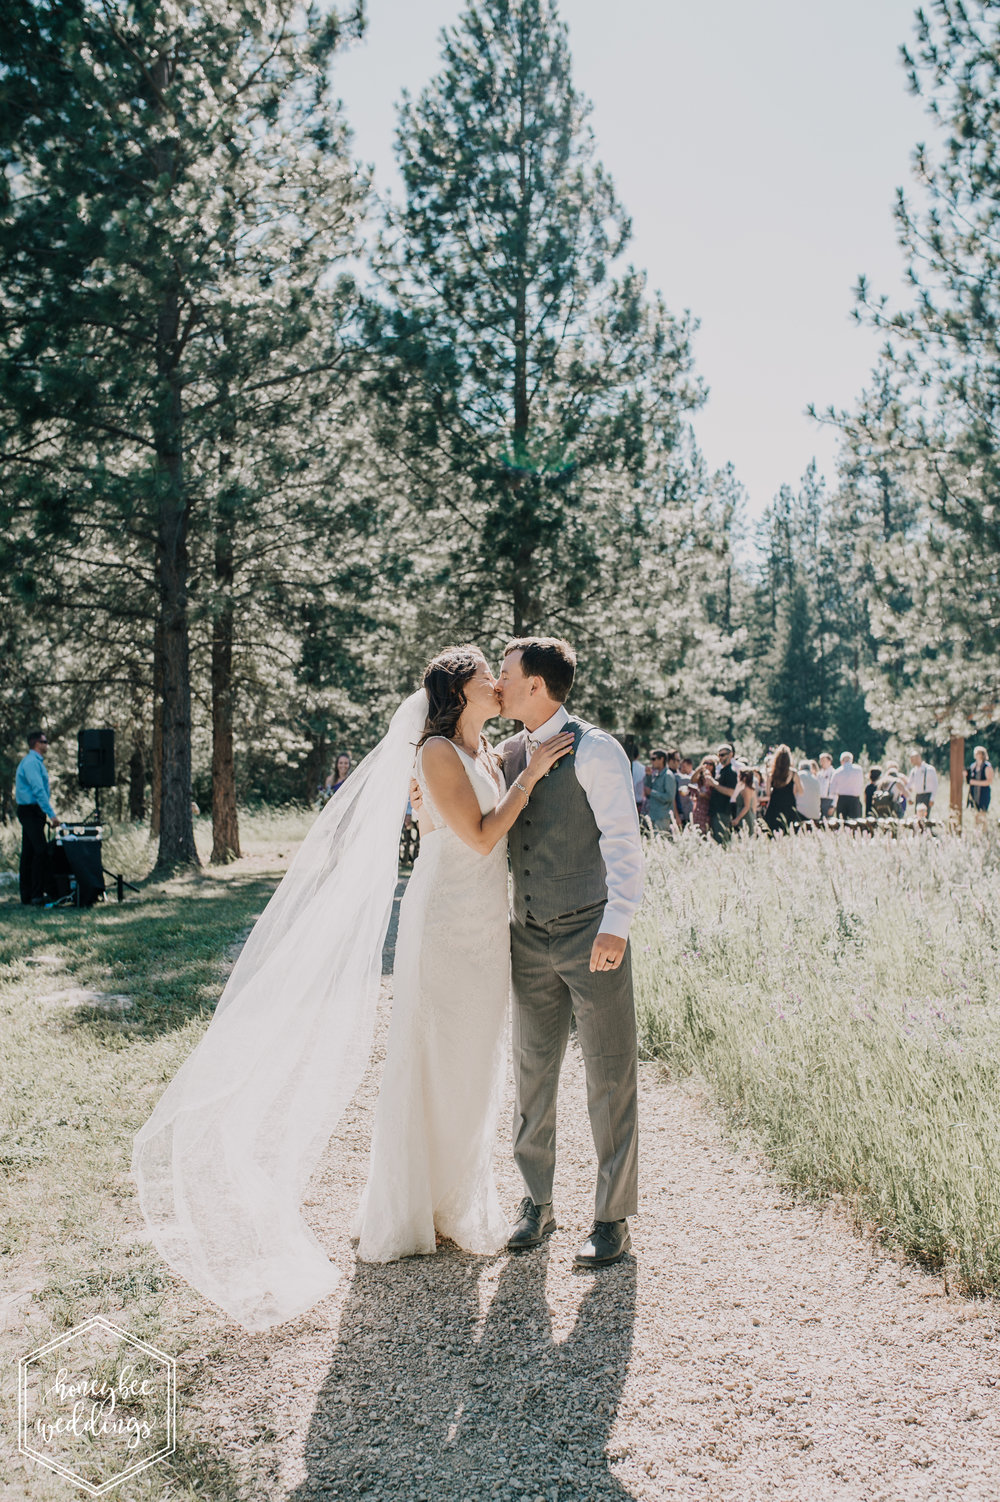 377 White Raven Wedding_Montana Wedding Photographer_Honeybee Weddings_ Meghan Maloney + Arza Hammond 2018-0261-2.jpg